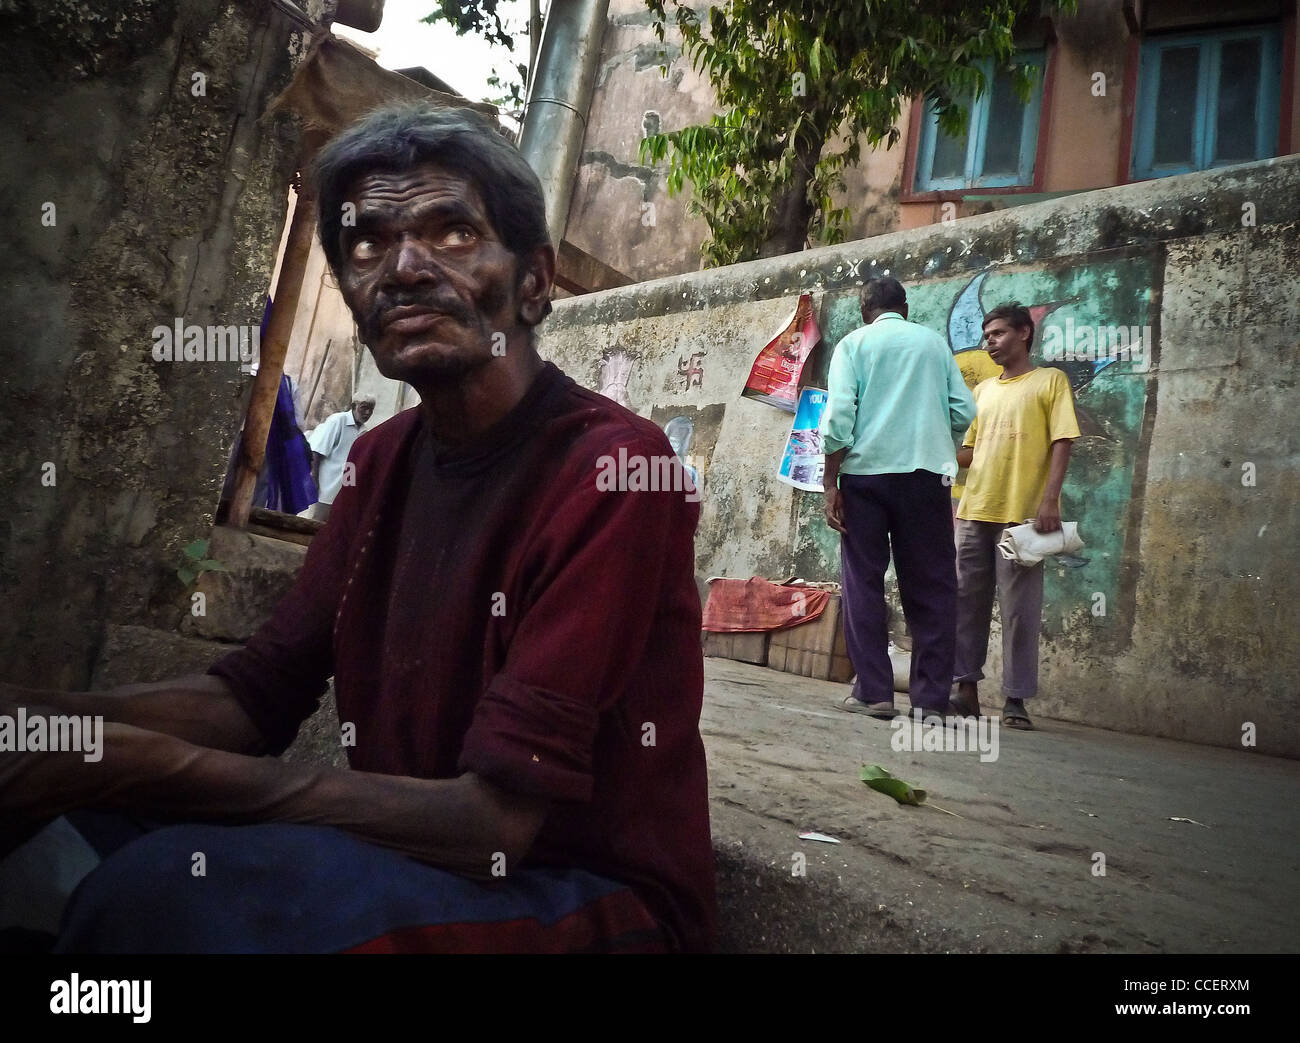 Untouchable and disabled Bombay., the weathered. - Stock Image